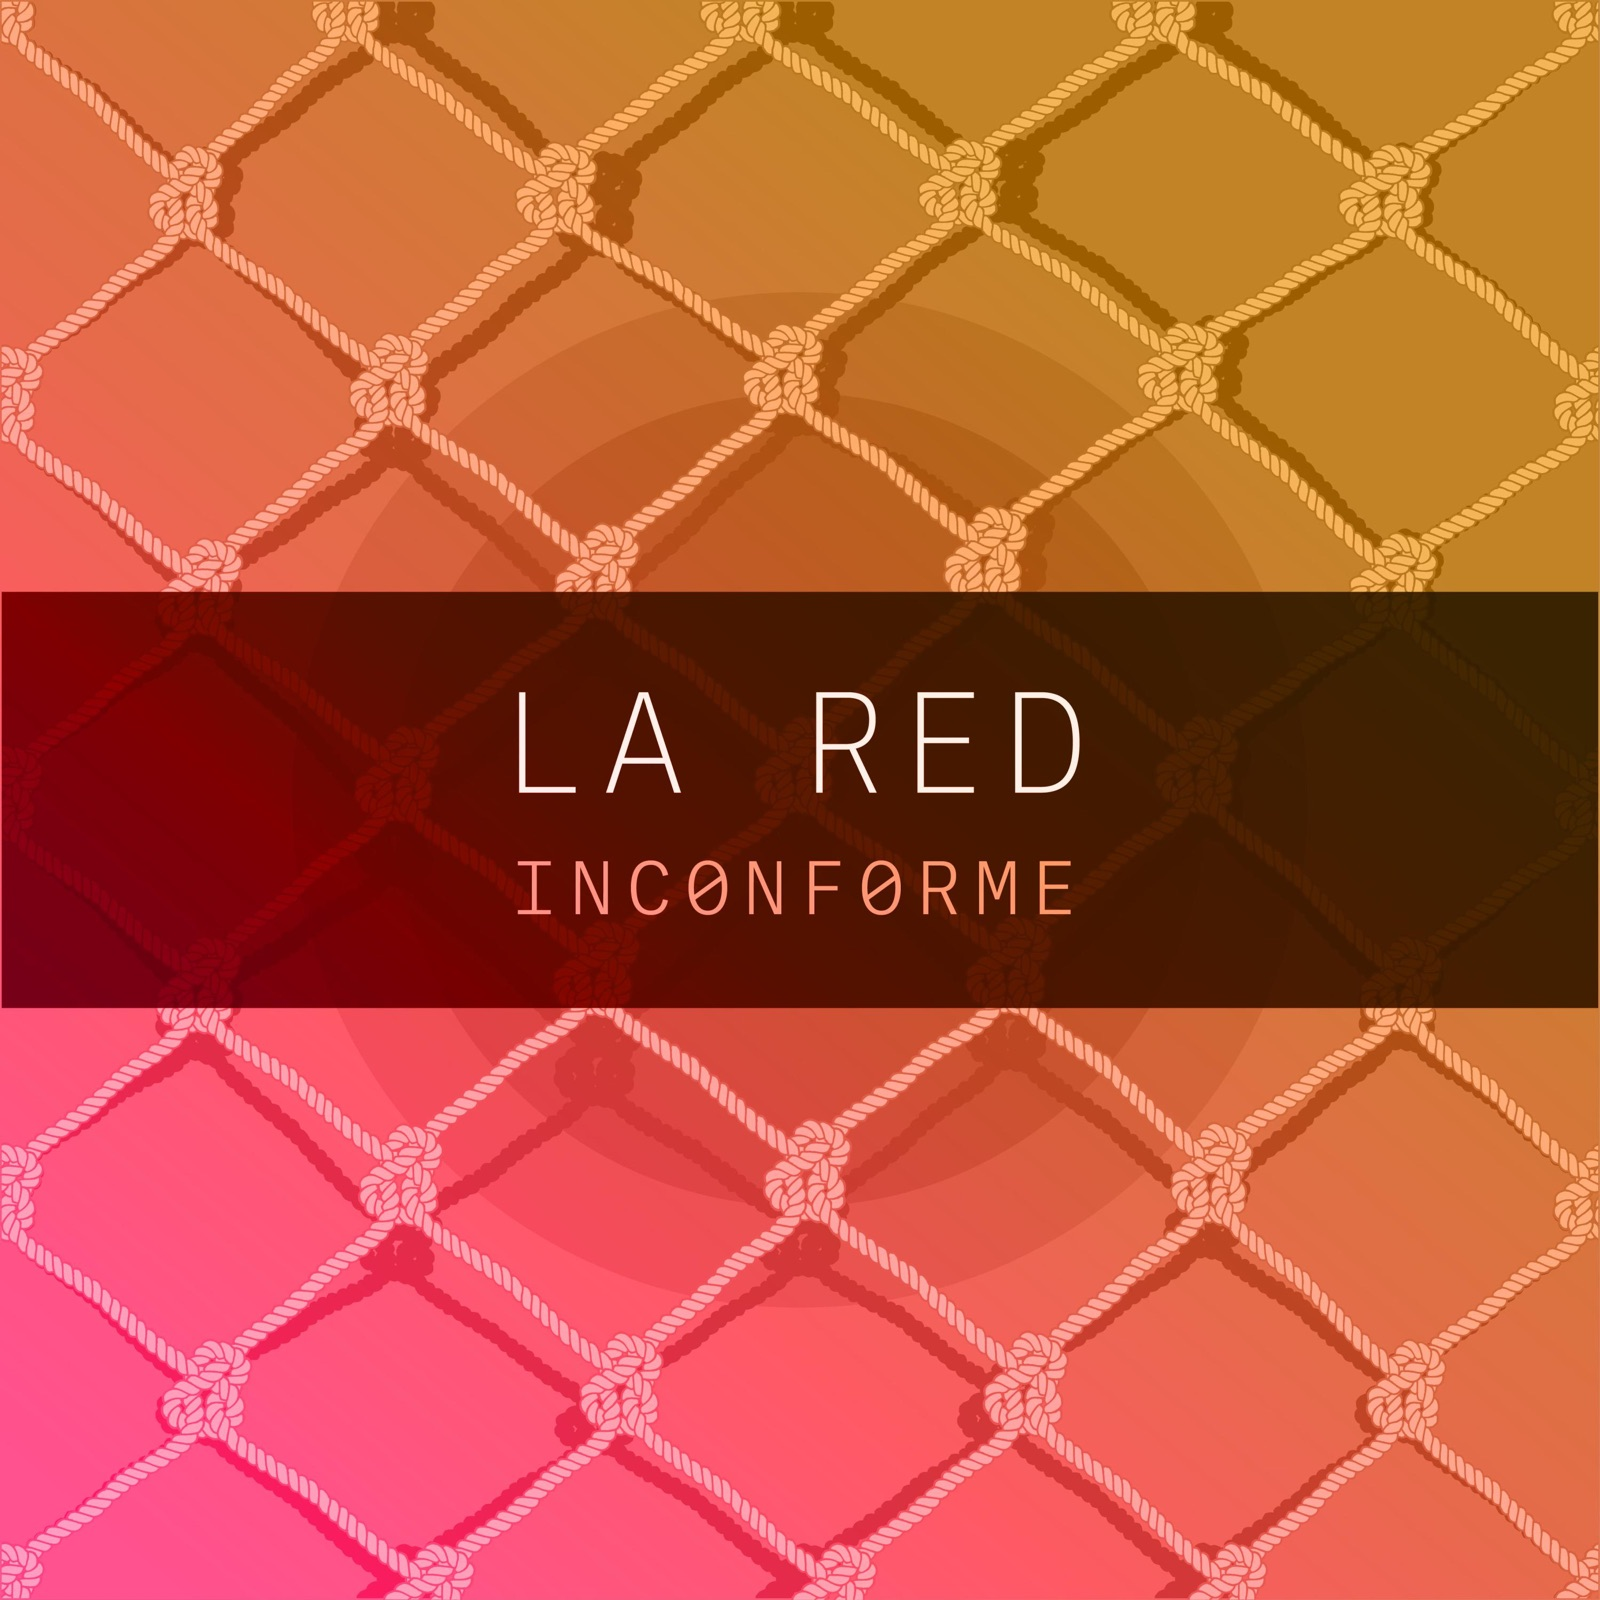 Inconforme (La Red - Single)